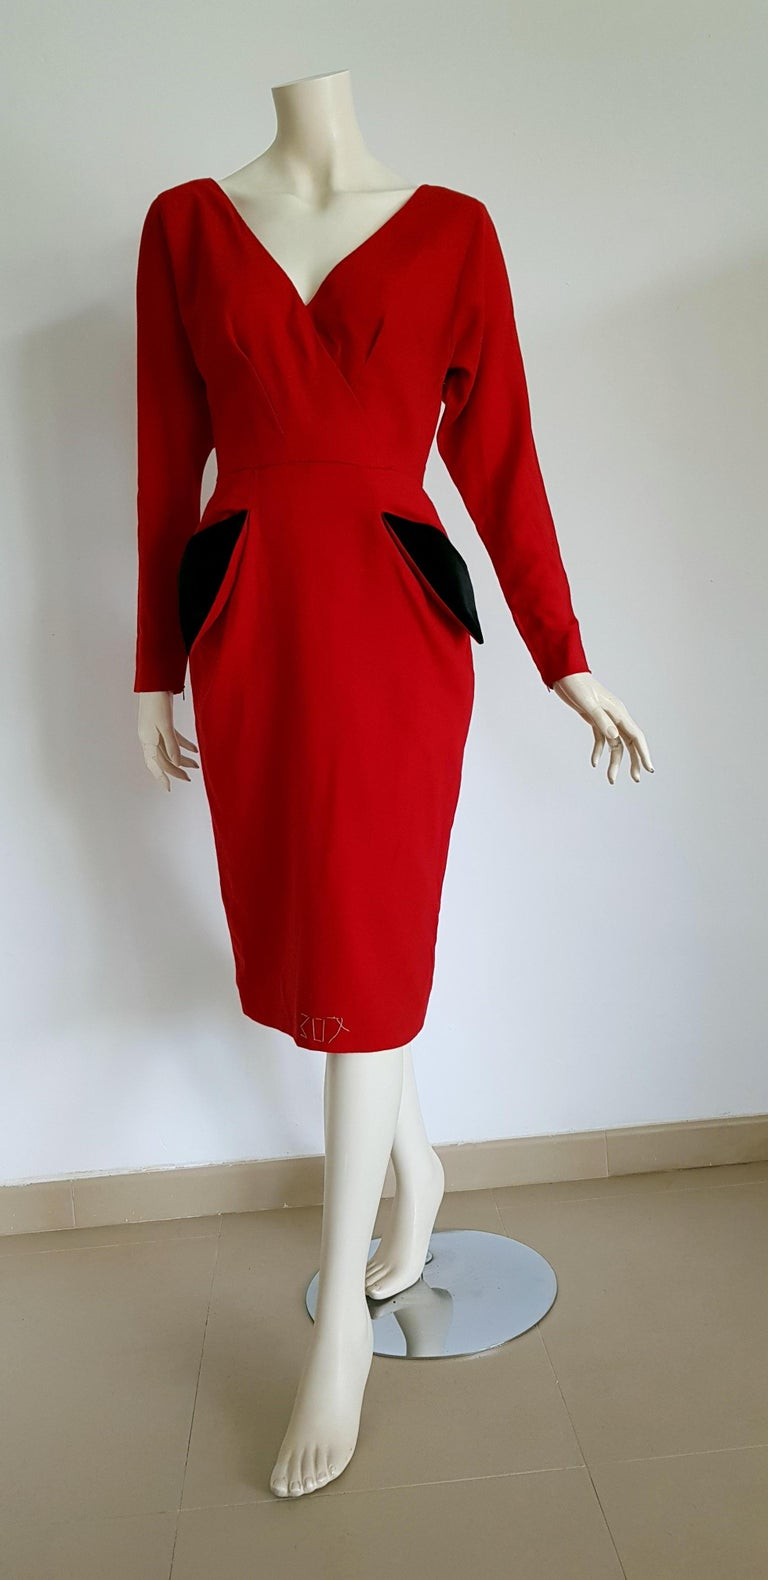 Christian DIOR Couture Red Black pokets Buttons Wool Cotton Dress - Unworn, New.  SIZE: equivalent to about Small / Medium, please review approx measurements as follows in cm: lenght 110, chest underarm to underarm 52, bust circumference 88,